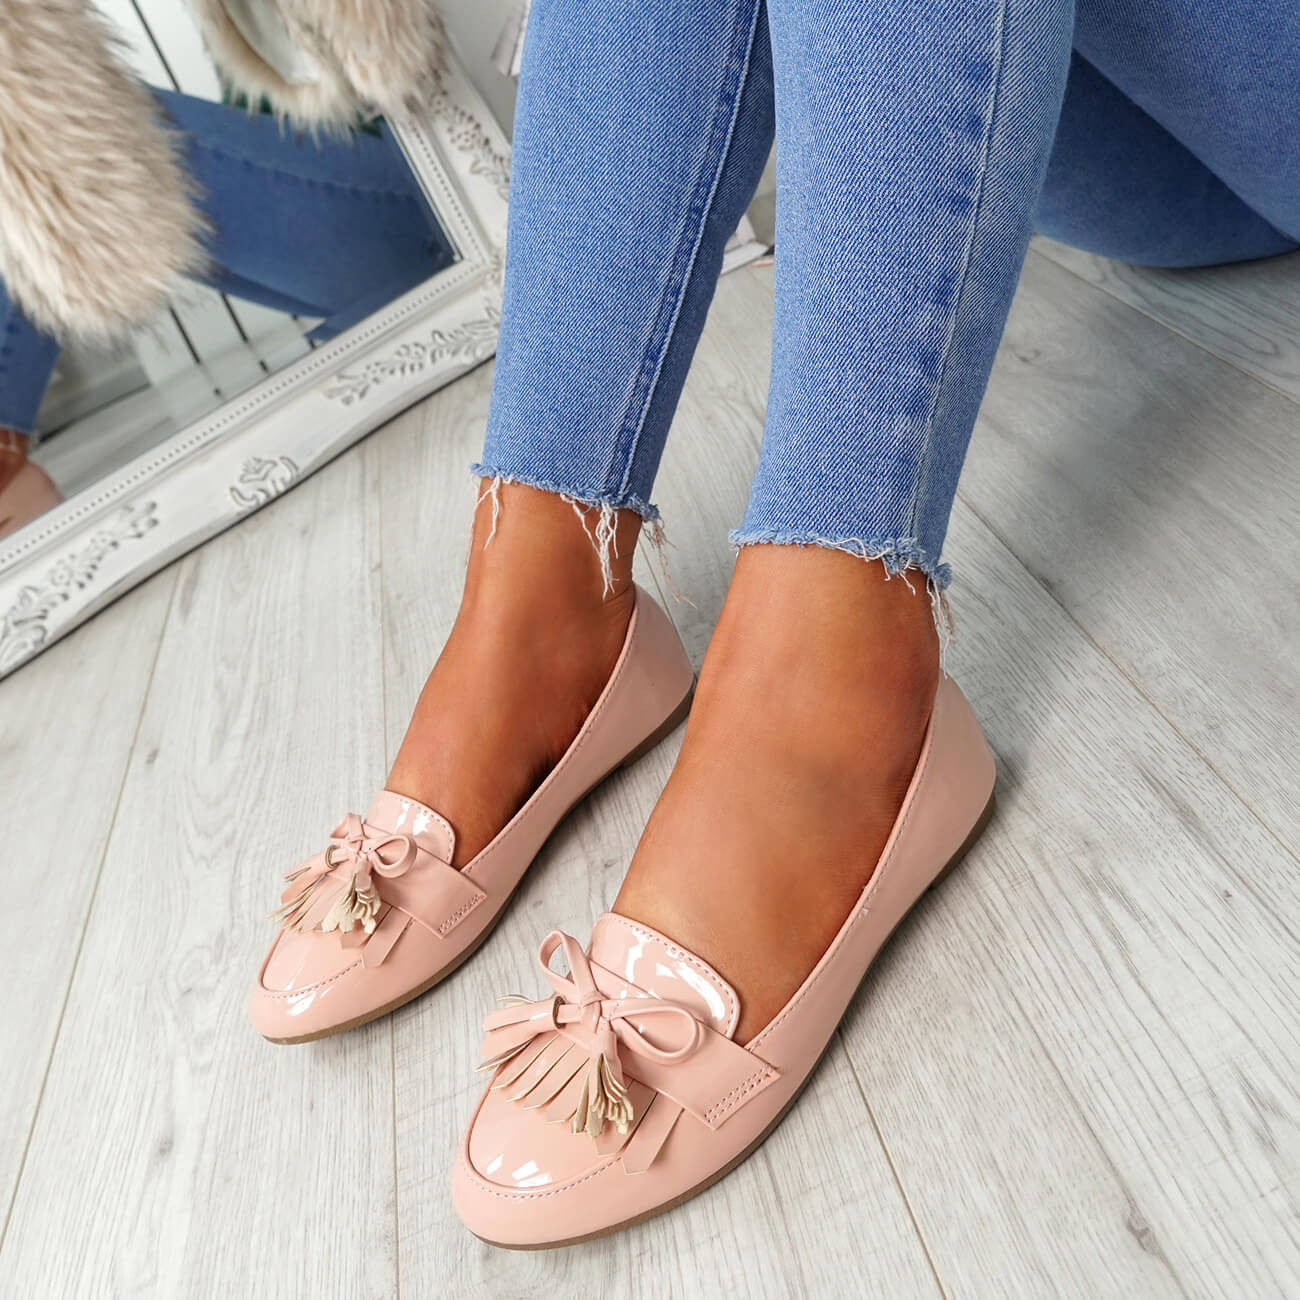 WOMENS-LADIES-FRINGE-BALLERINAS-SLIP-ON-FLAT-DOLLY-PUMPS-CASUAL-SMART-SHOES-SIZE thumbnail 23